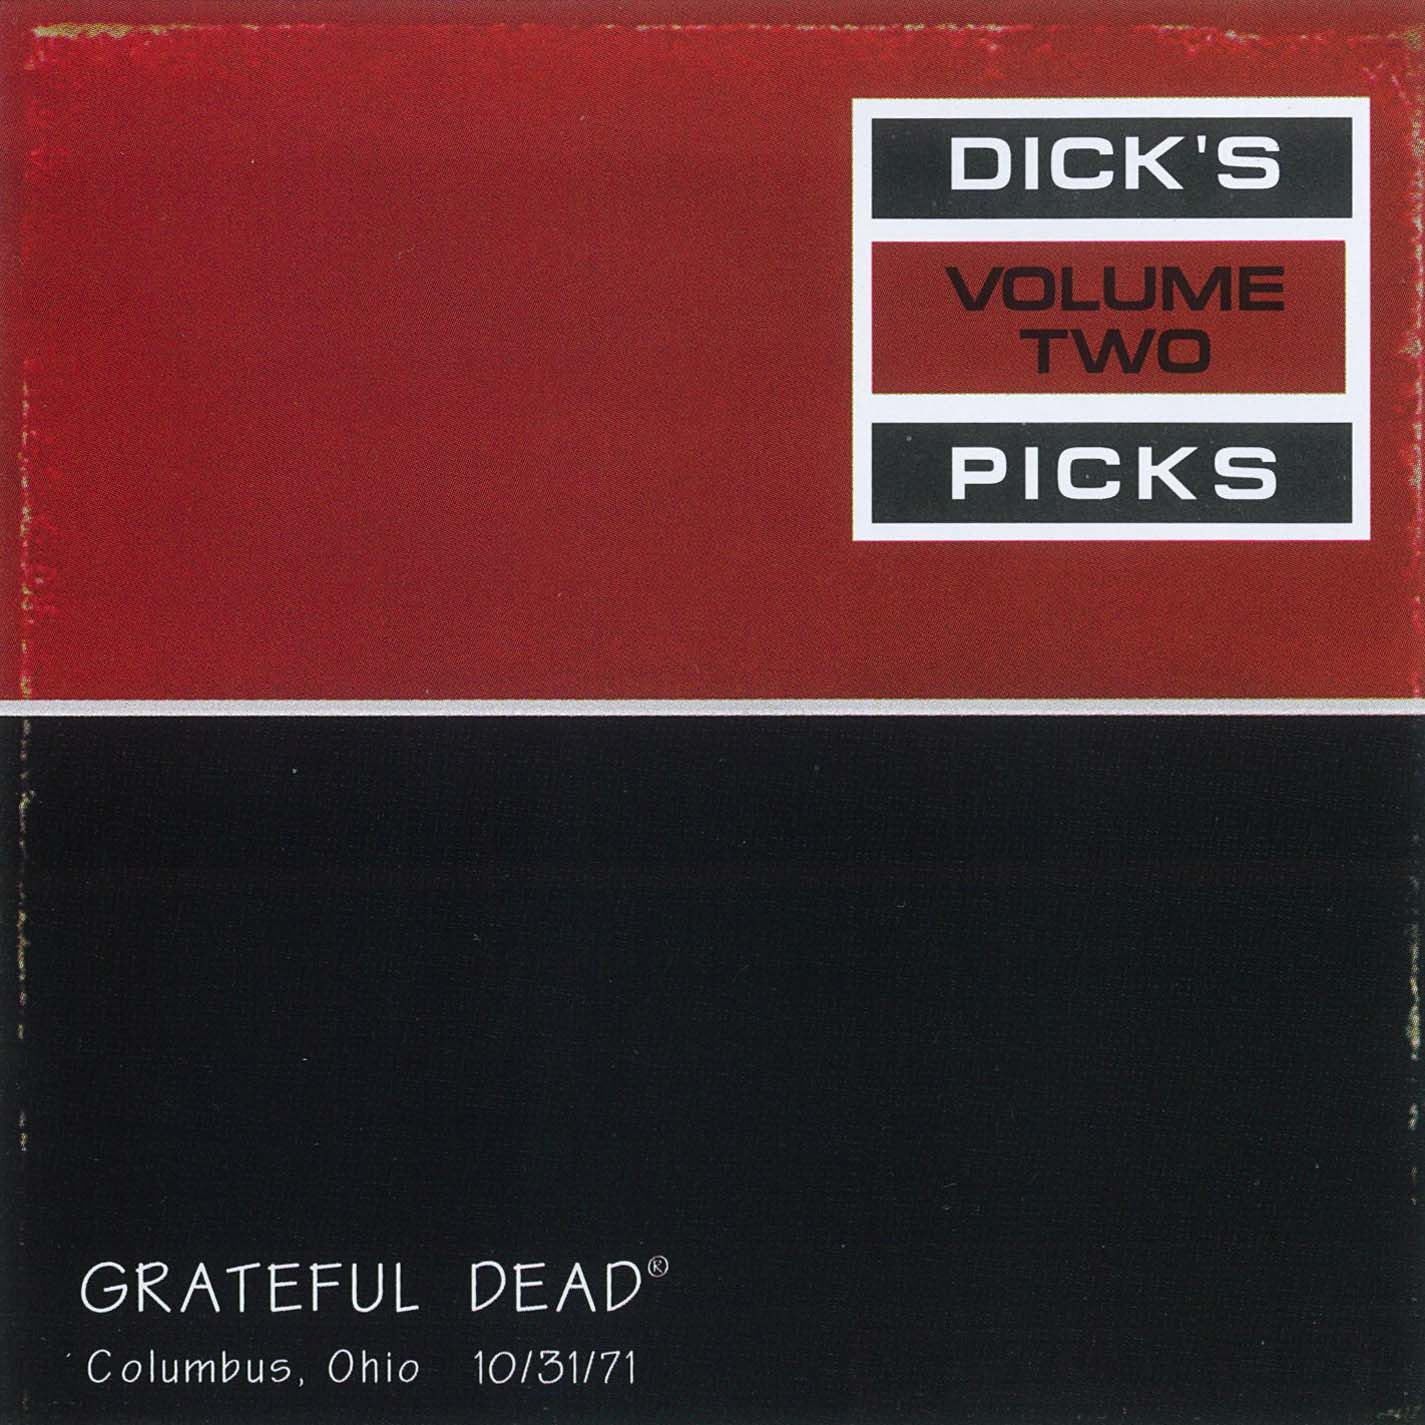 Grateful Dead Dick's Picks 2 album cover artwork